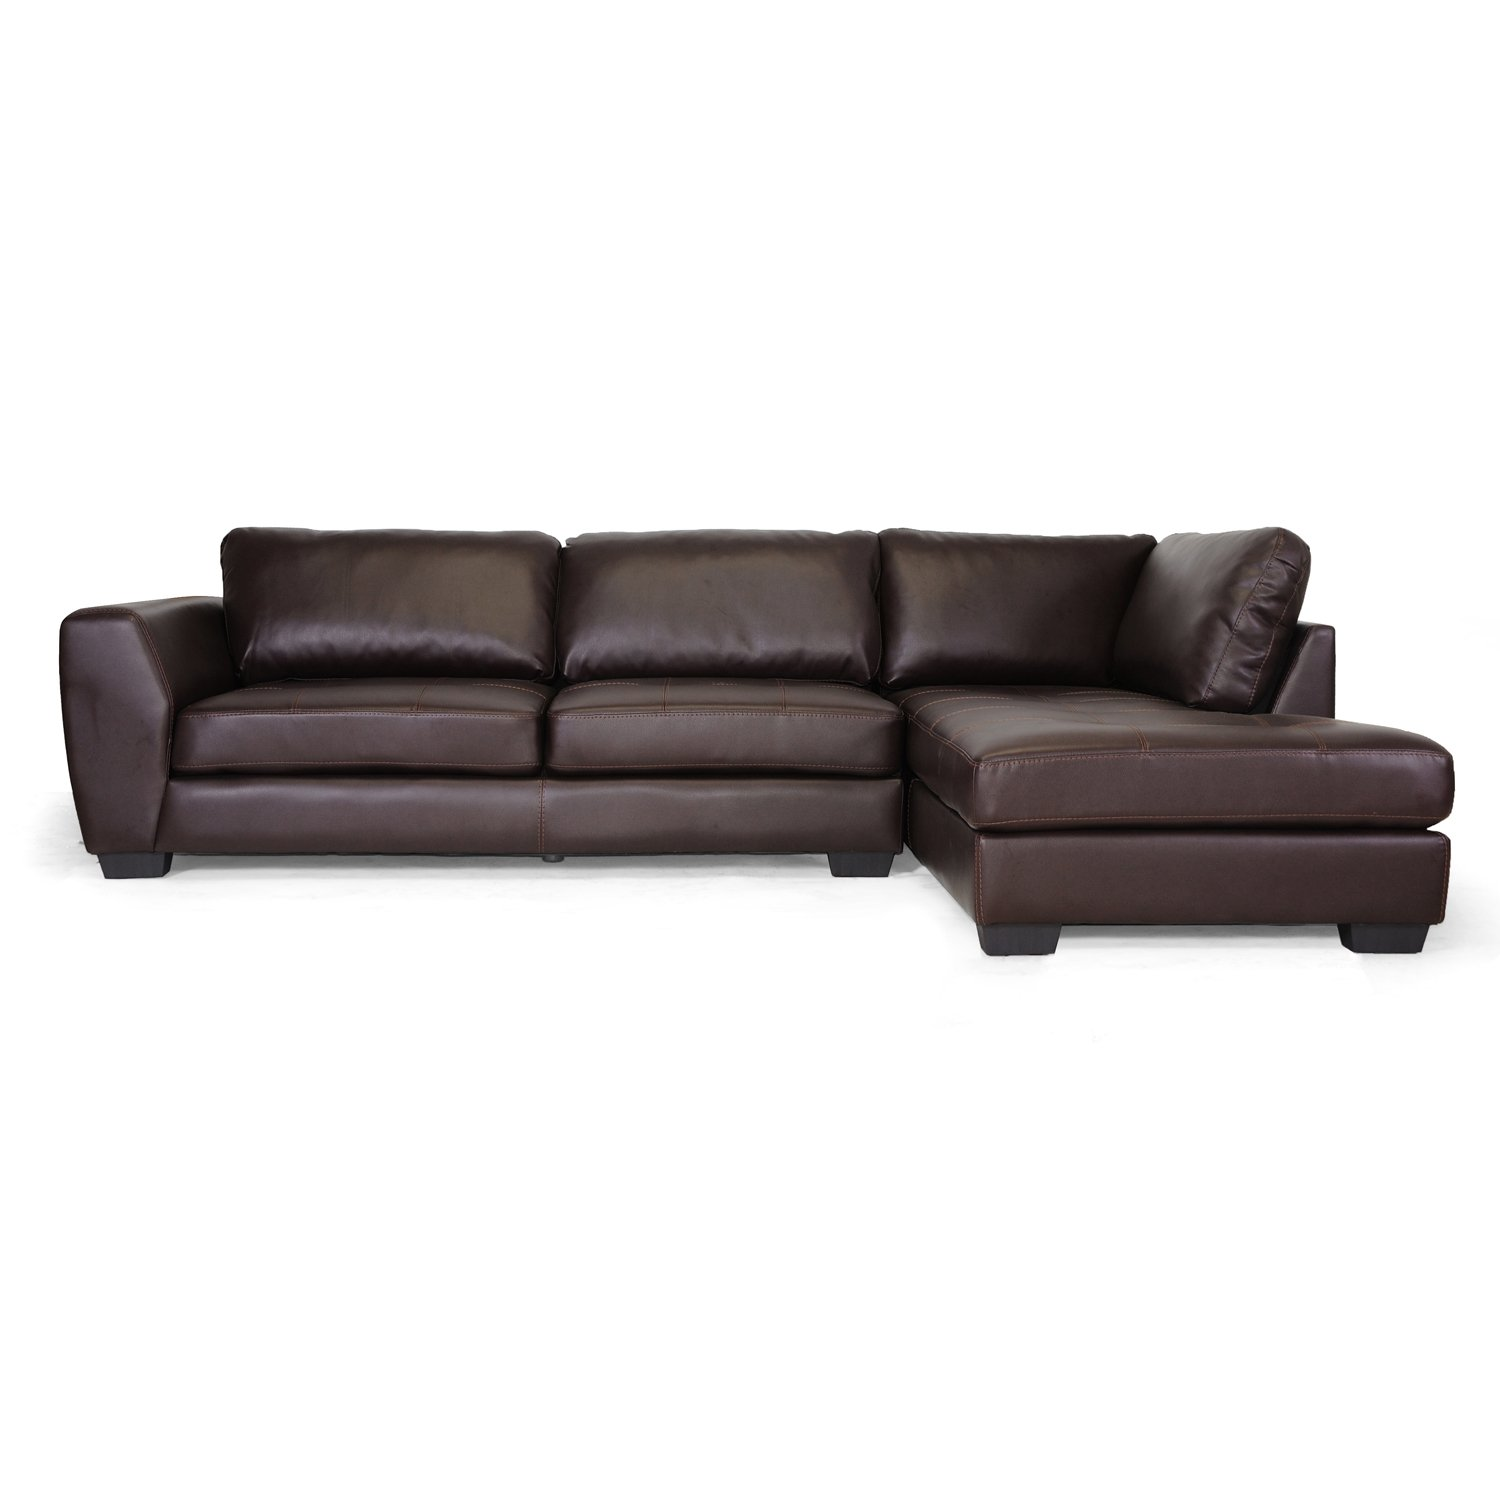 Amazon.com: Baxton Studio Orland Bonded Leather Modern Sectional Sofa Set  With Right Facing Chaise, Brown: Kitchen U0026 Dining